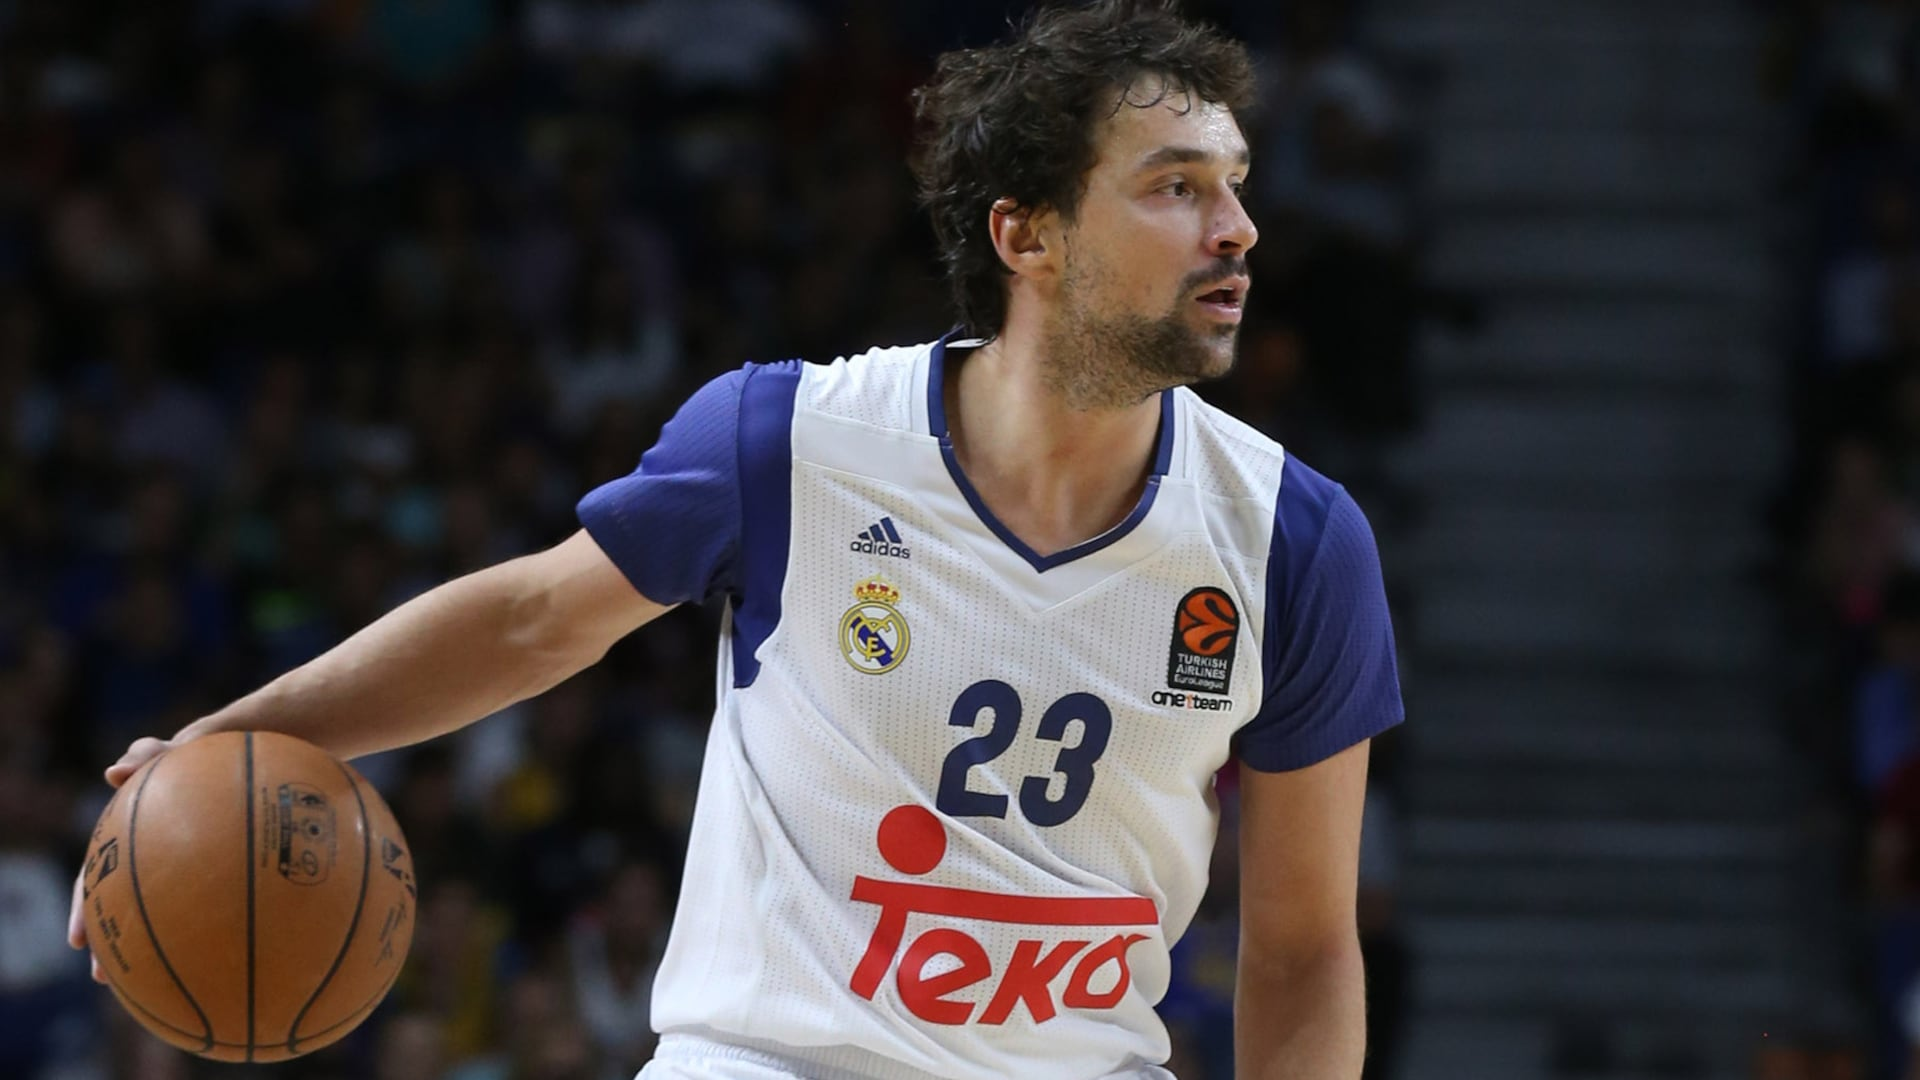 Spain's top basketball league set to return with 'bubble' format in place